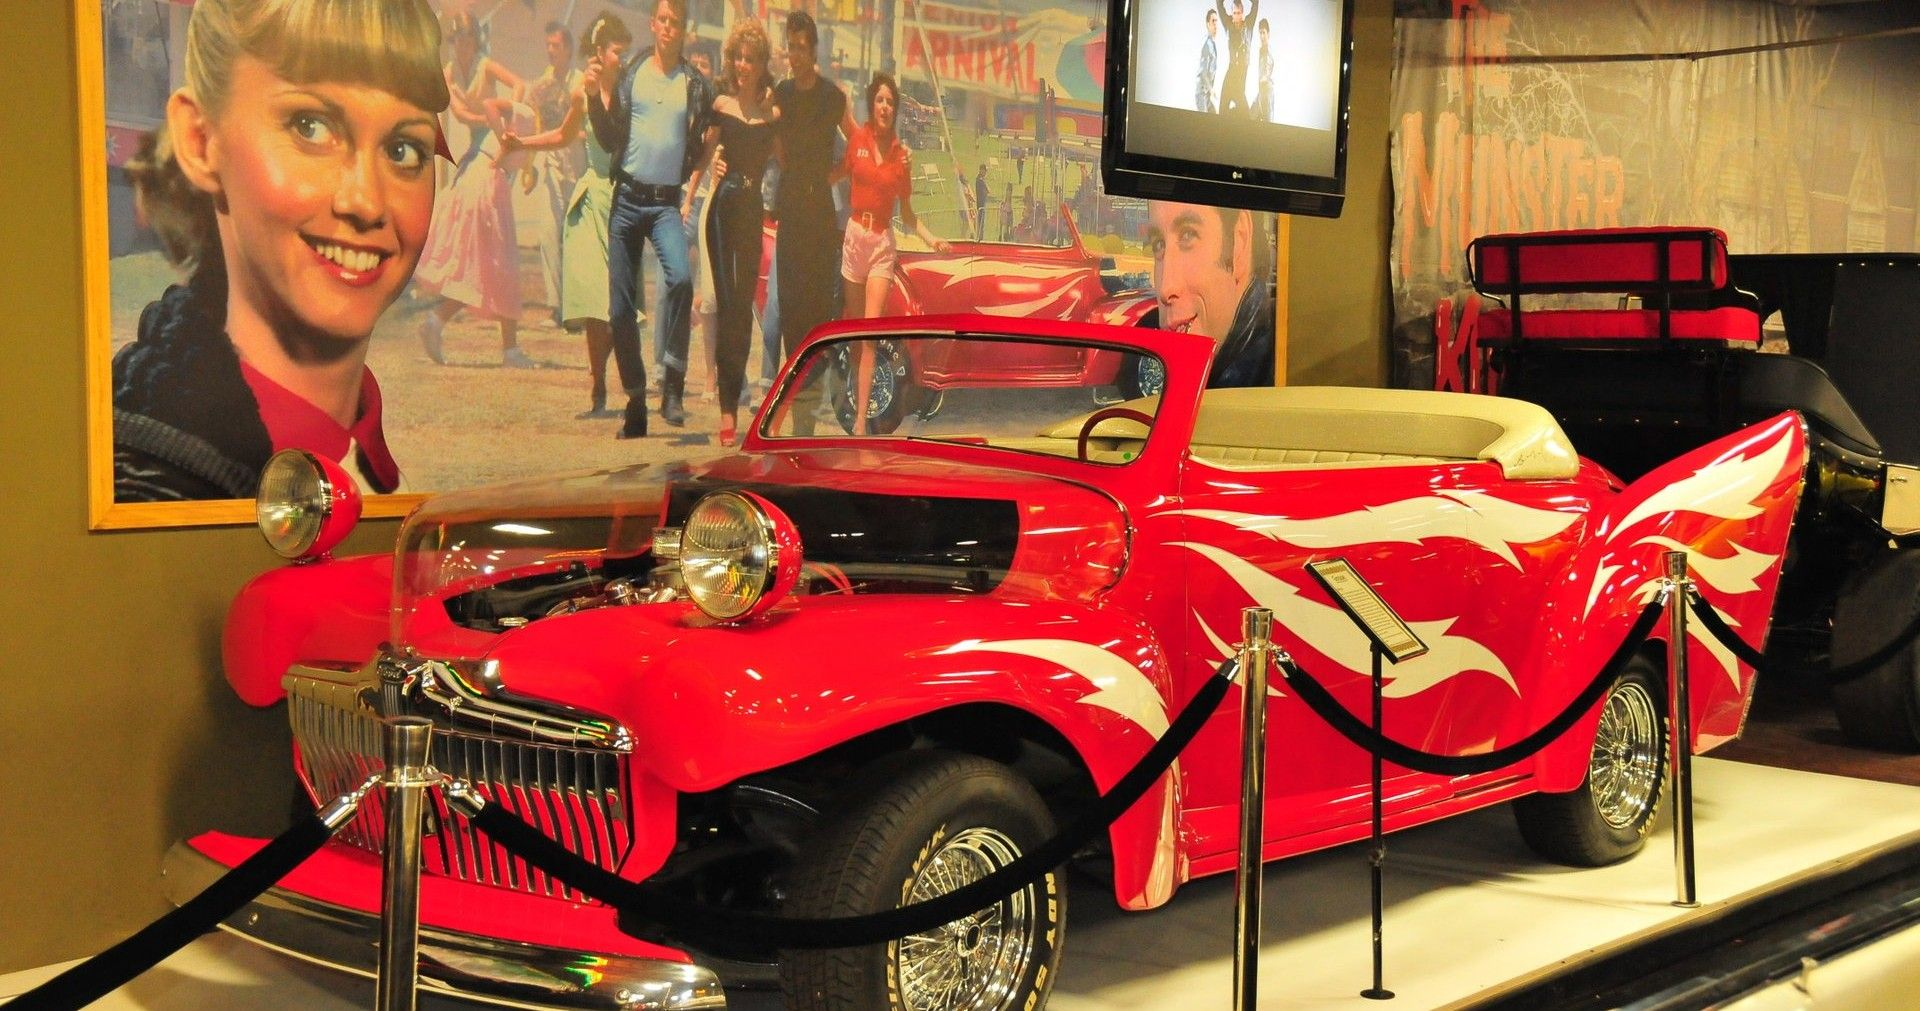 Here's Where The Ford De Luxe Convertible From Grease Is Today